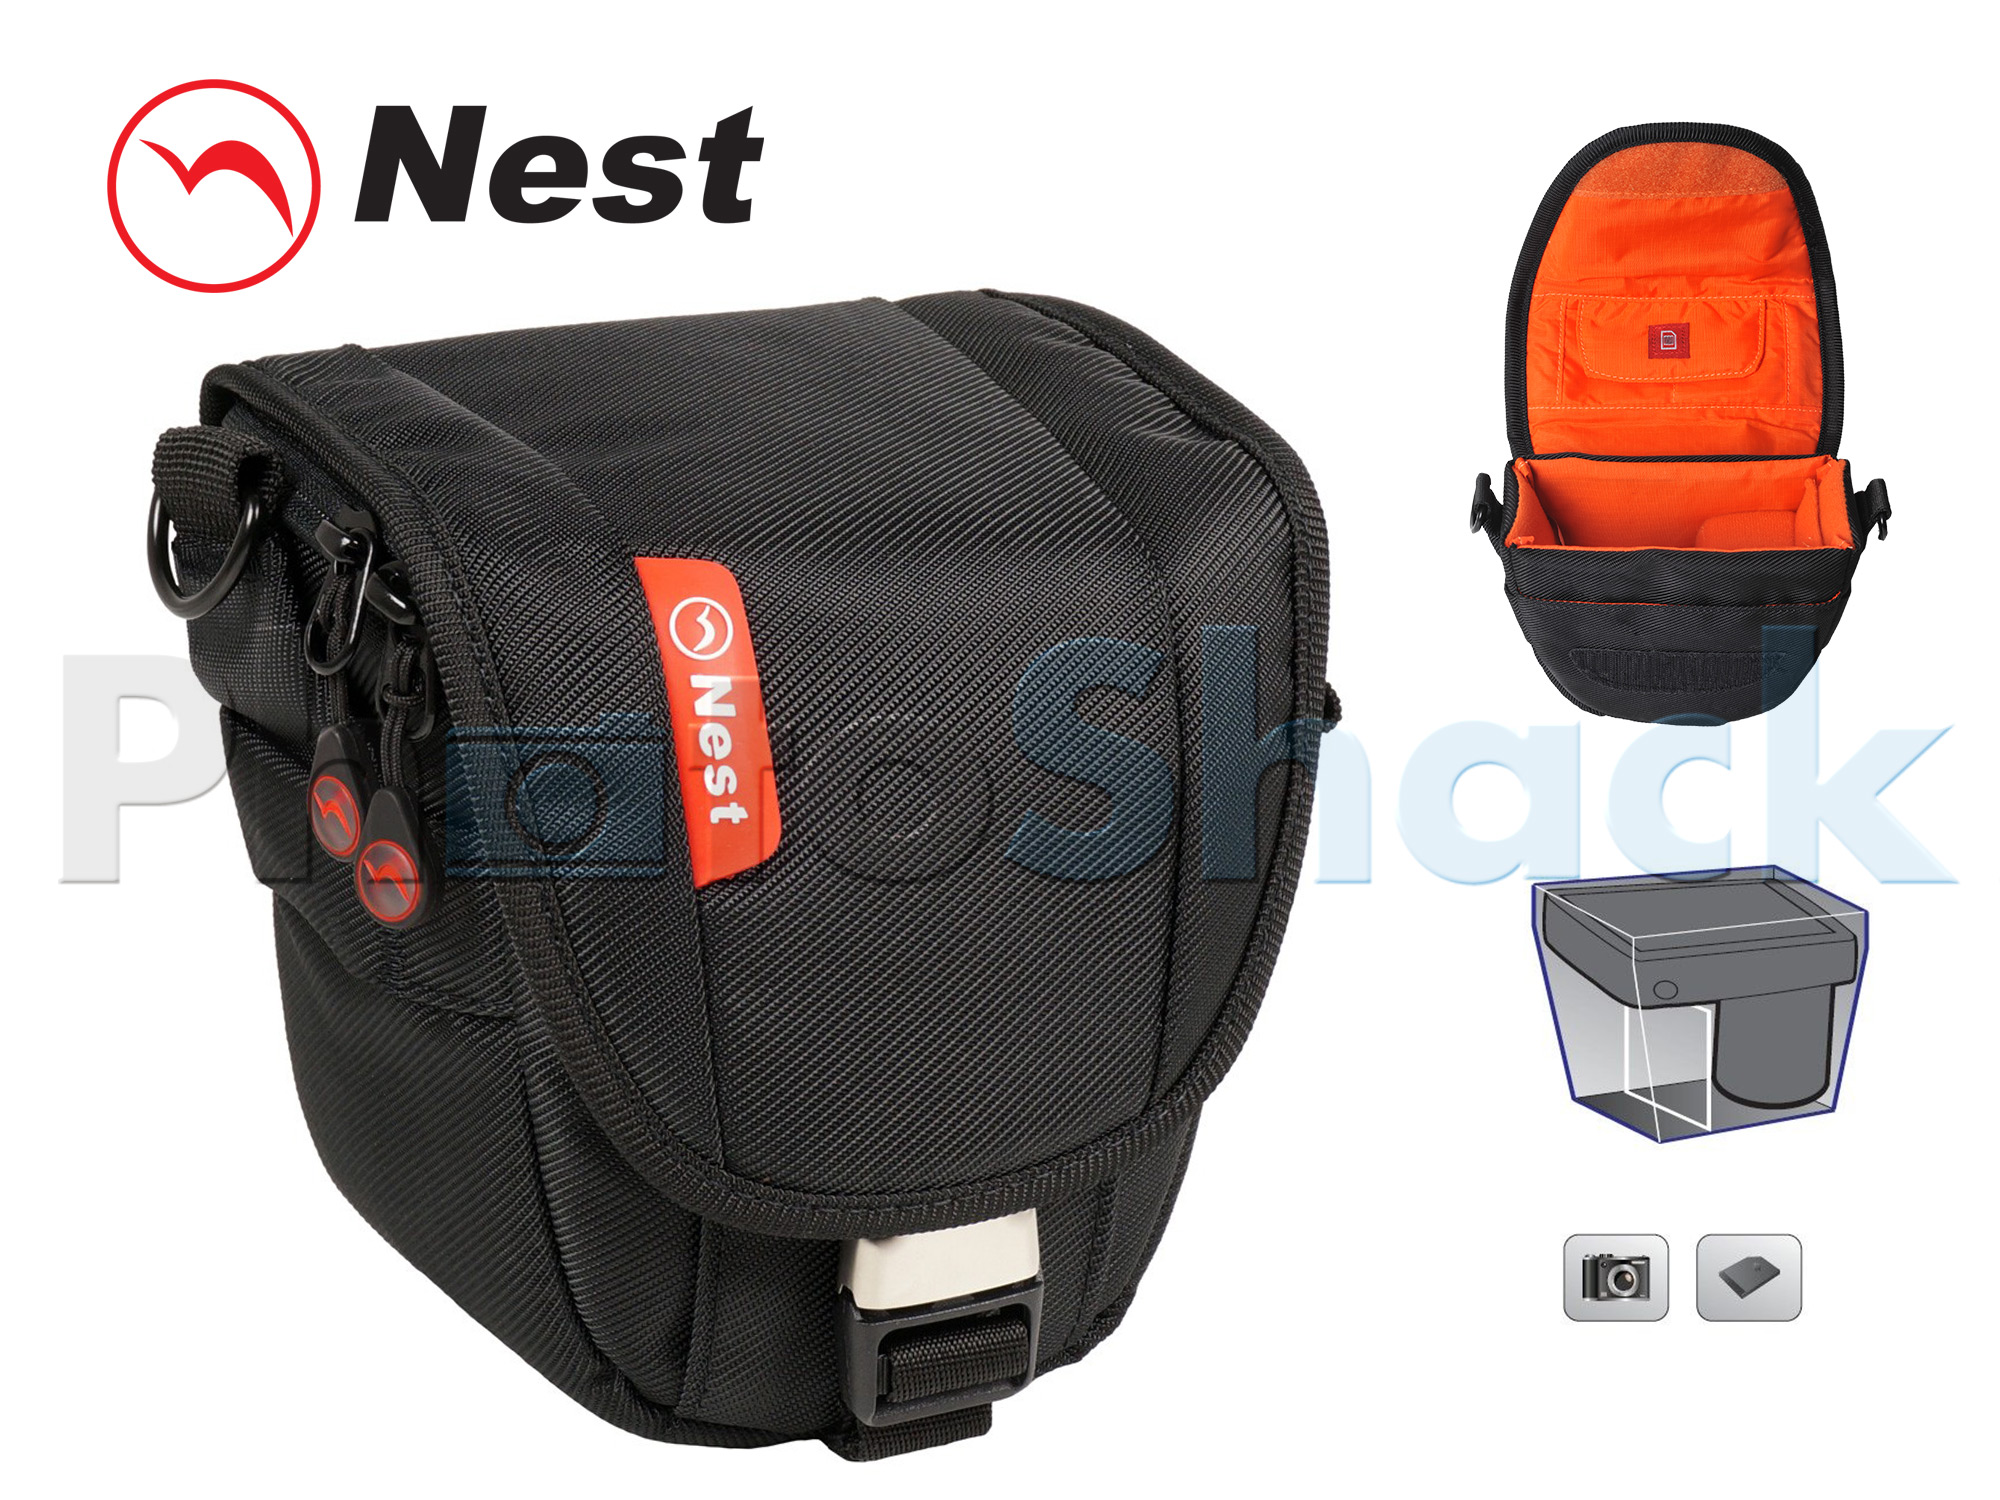 Nest Athena S15 Camera Bag - Black